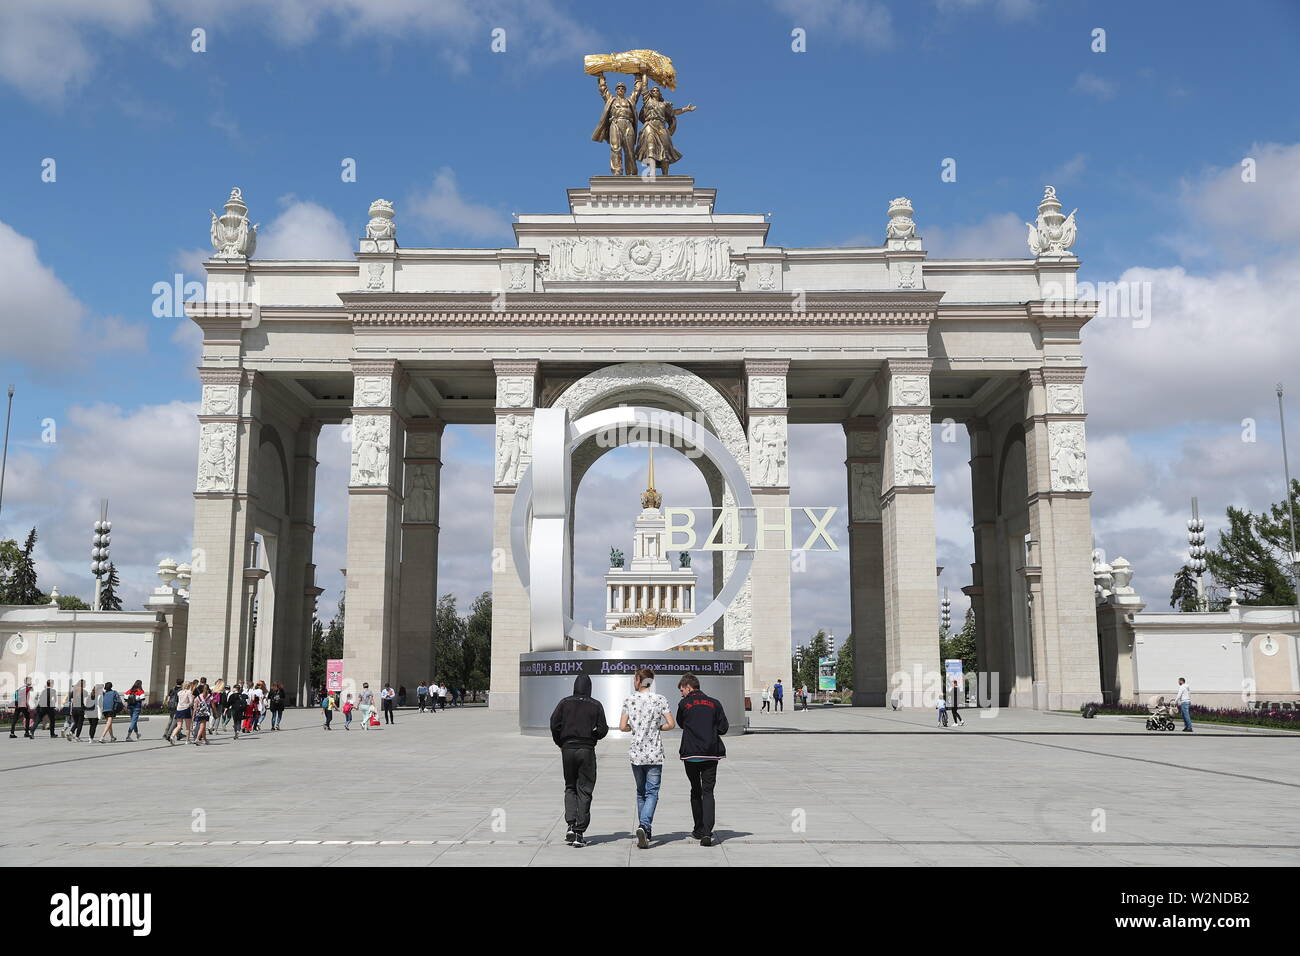 Moscow, Russia. 10th July, 2019. MOSCOW, RUSSIA - JULY 10, 2019: The main entrance to the VDNKh exhibition centre and park. Alexander Shcherbak/TASS Credit: ITAR-TASS News Agency/Alamy Live News Stock Photo